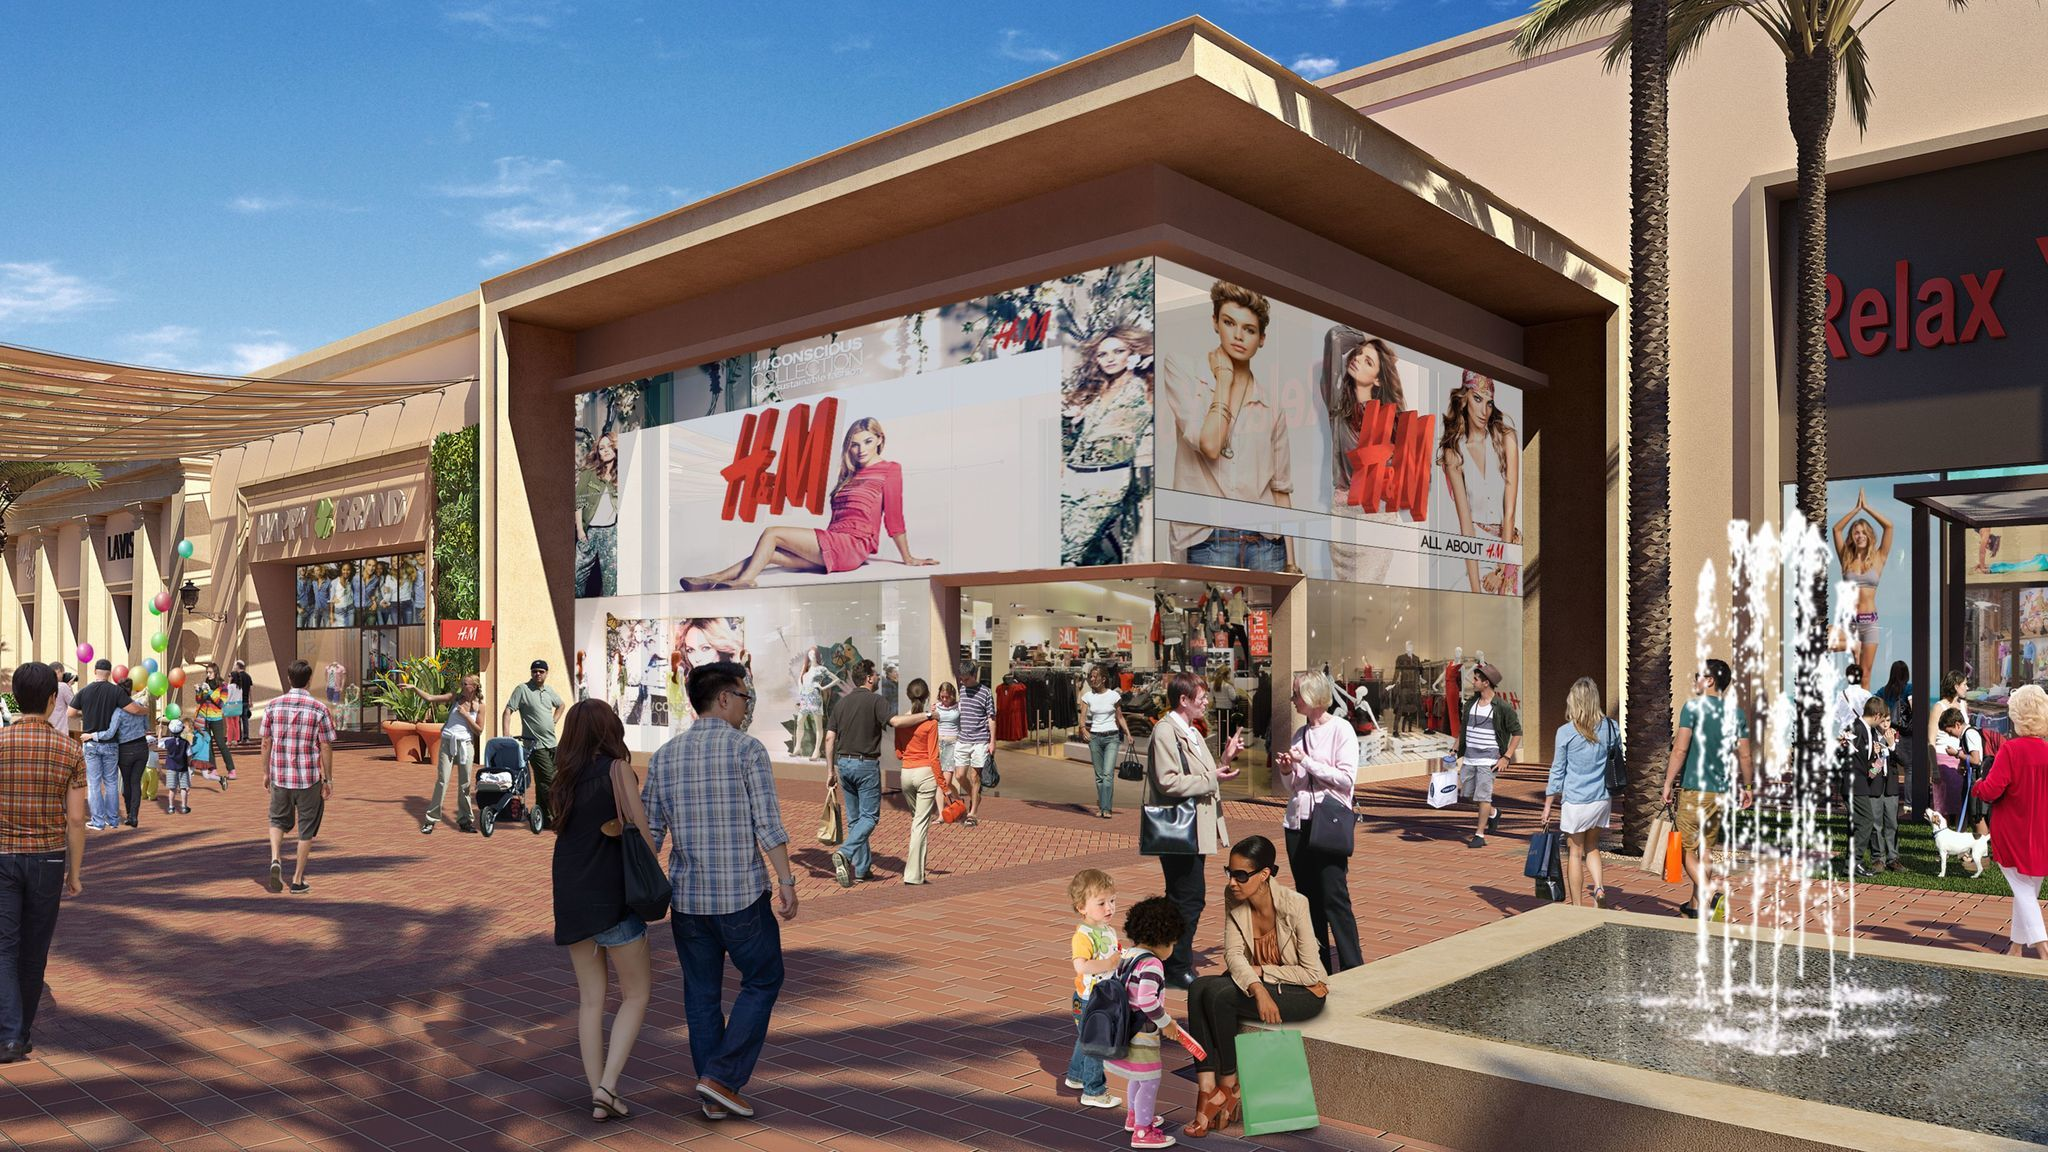 Hello Kitty Cafe and Afters Ice Cream are among 30 new additions planned for Spectrum Center | The Los Angeles Times